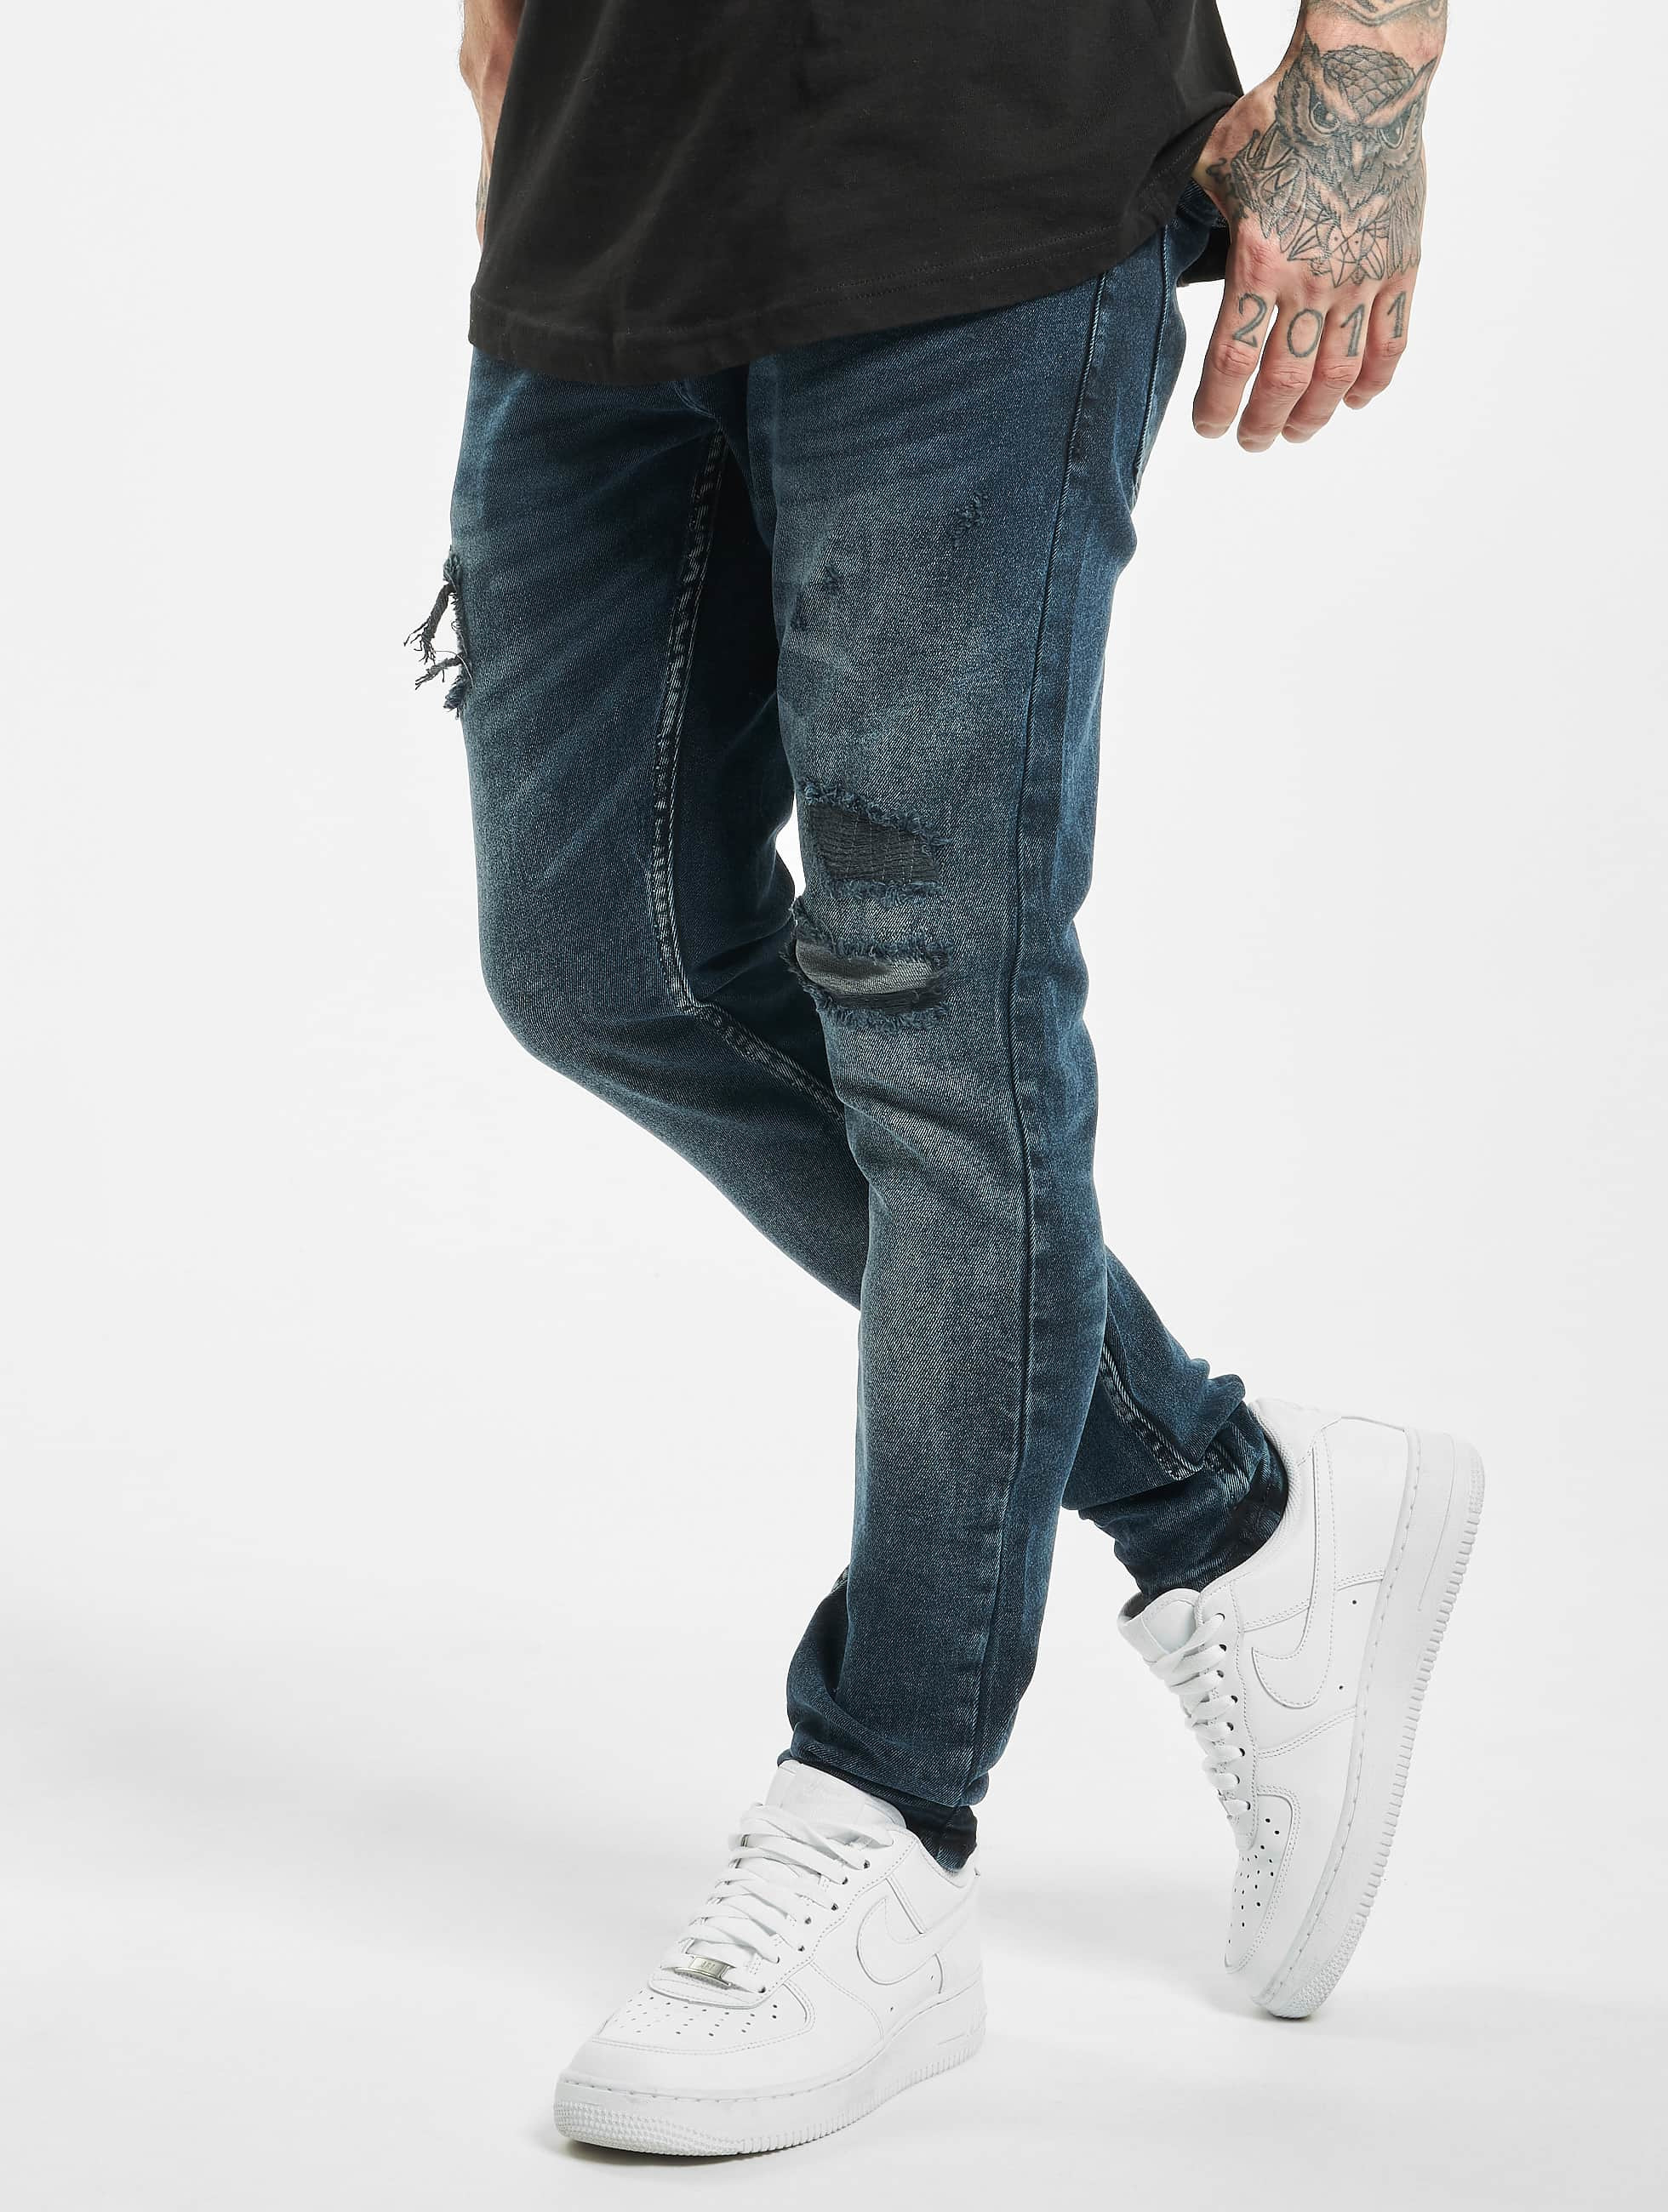 2Y / Skinny Jeans Tino in blue W 32